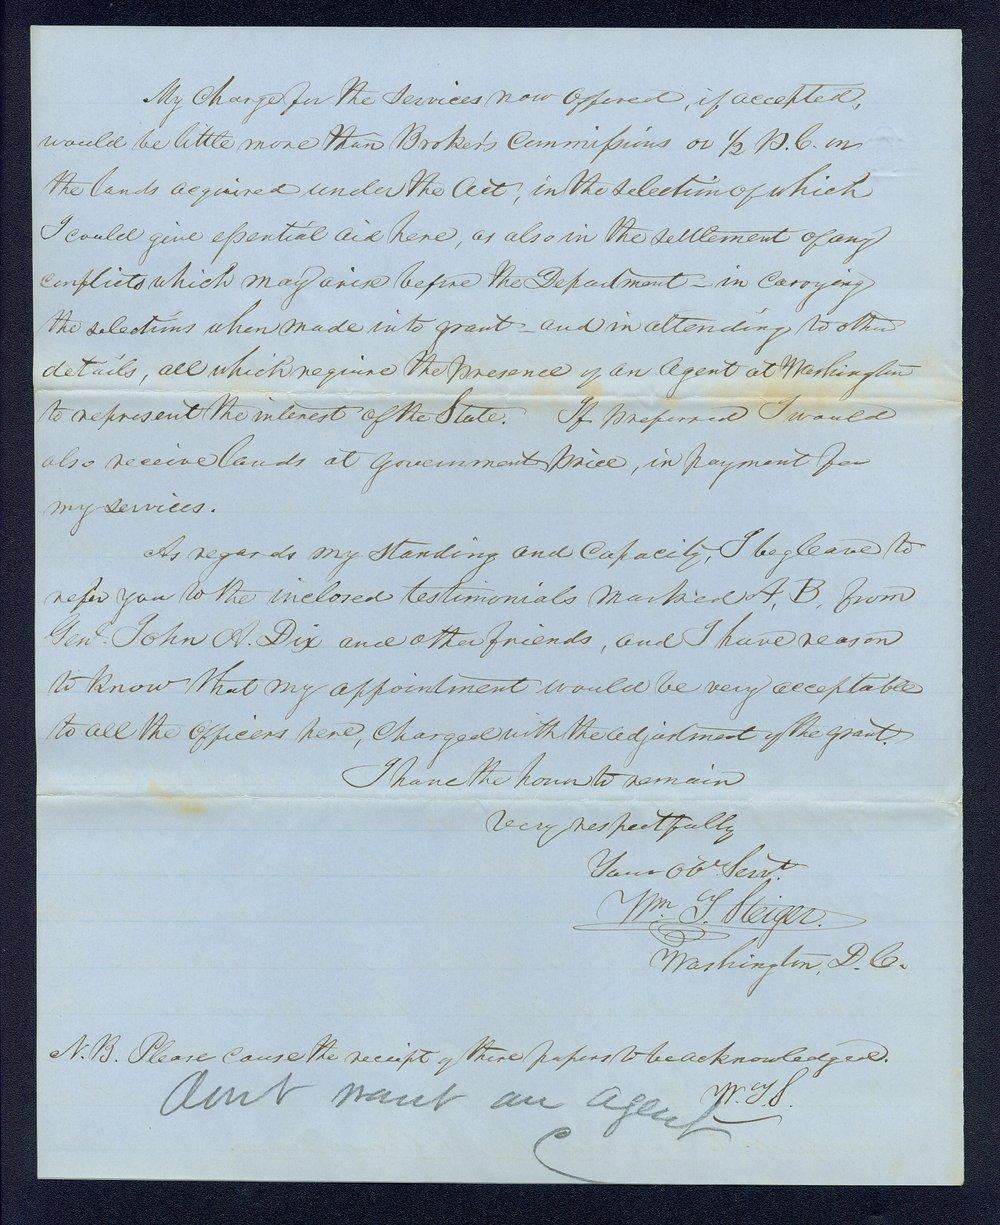 Governor Thomas Carney college and university lands, 1863, correspondence - 2